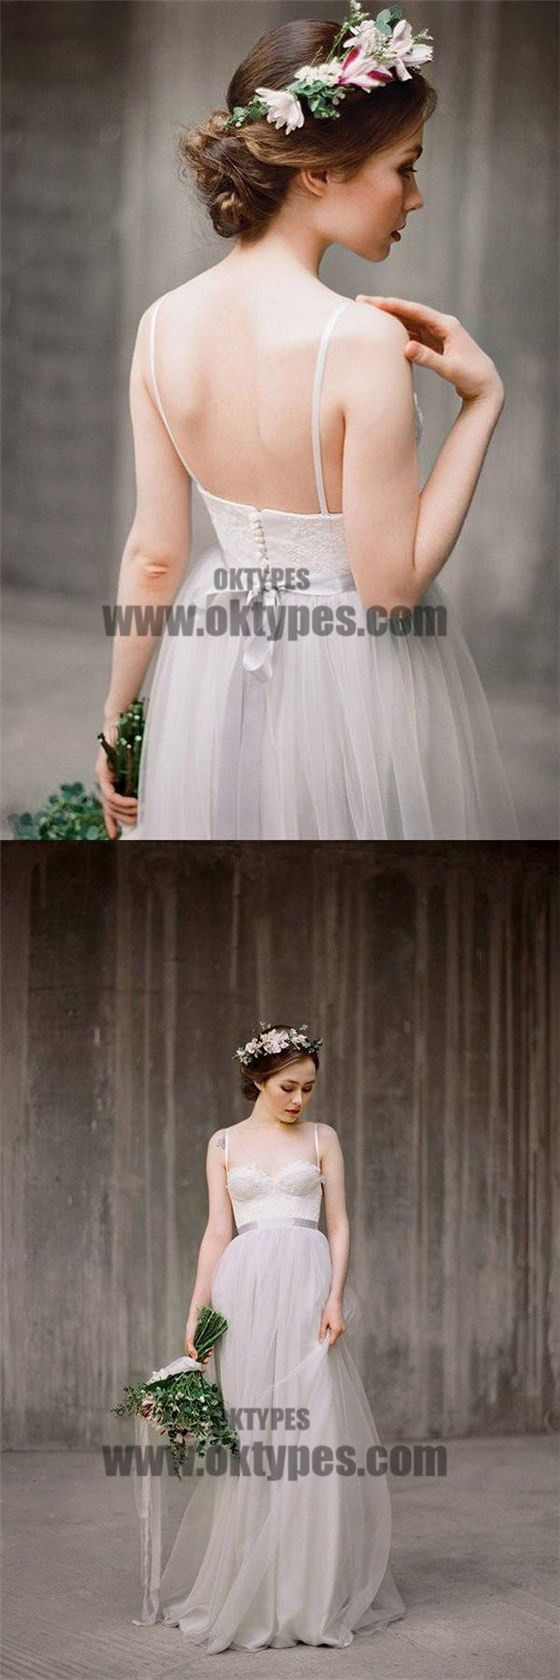 Best dresses to wear to a beach wedding   best wedding dresses images on Pinterest